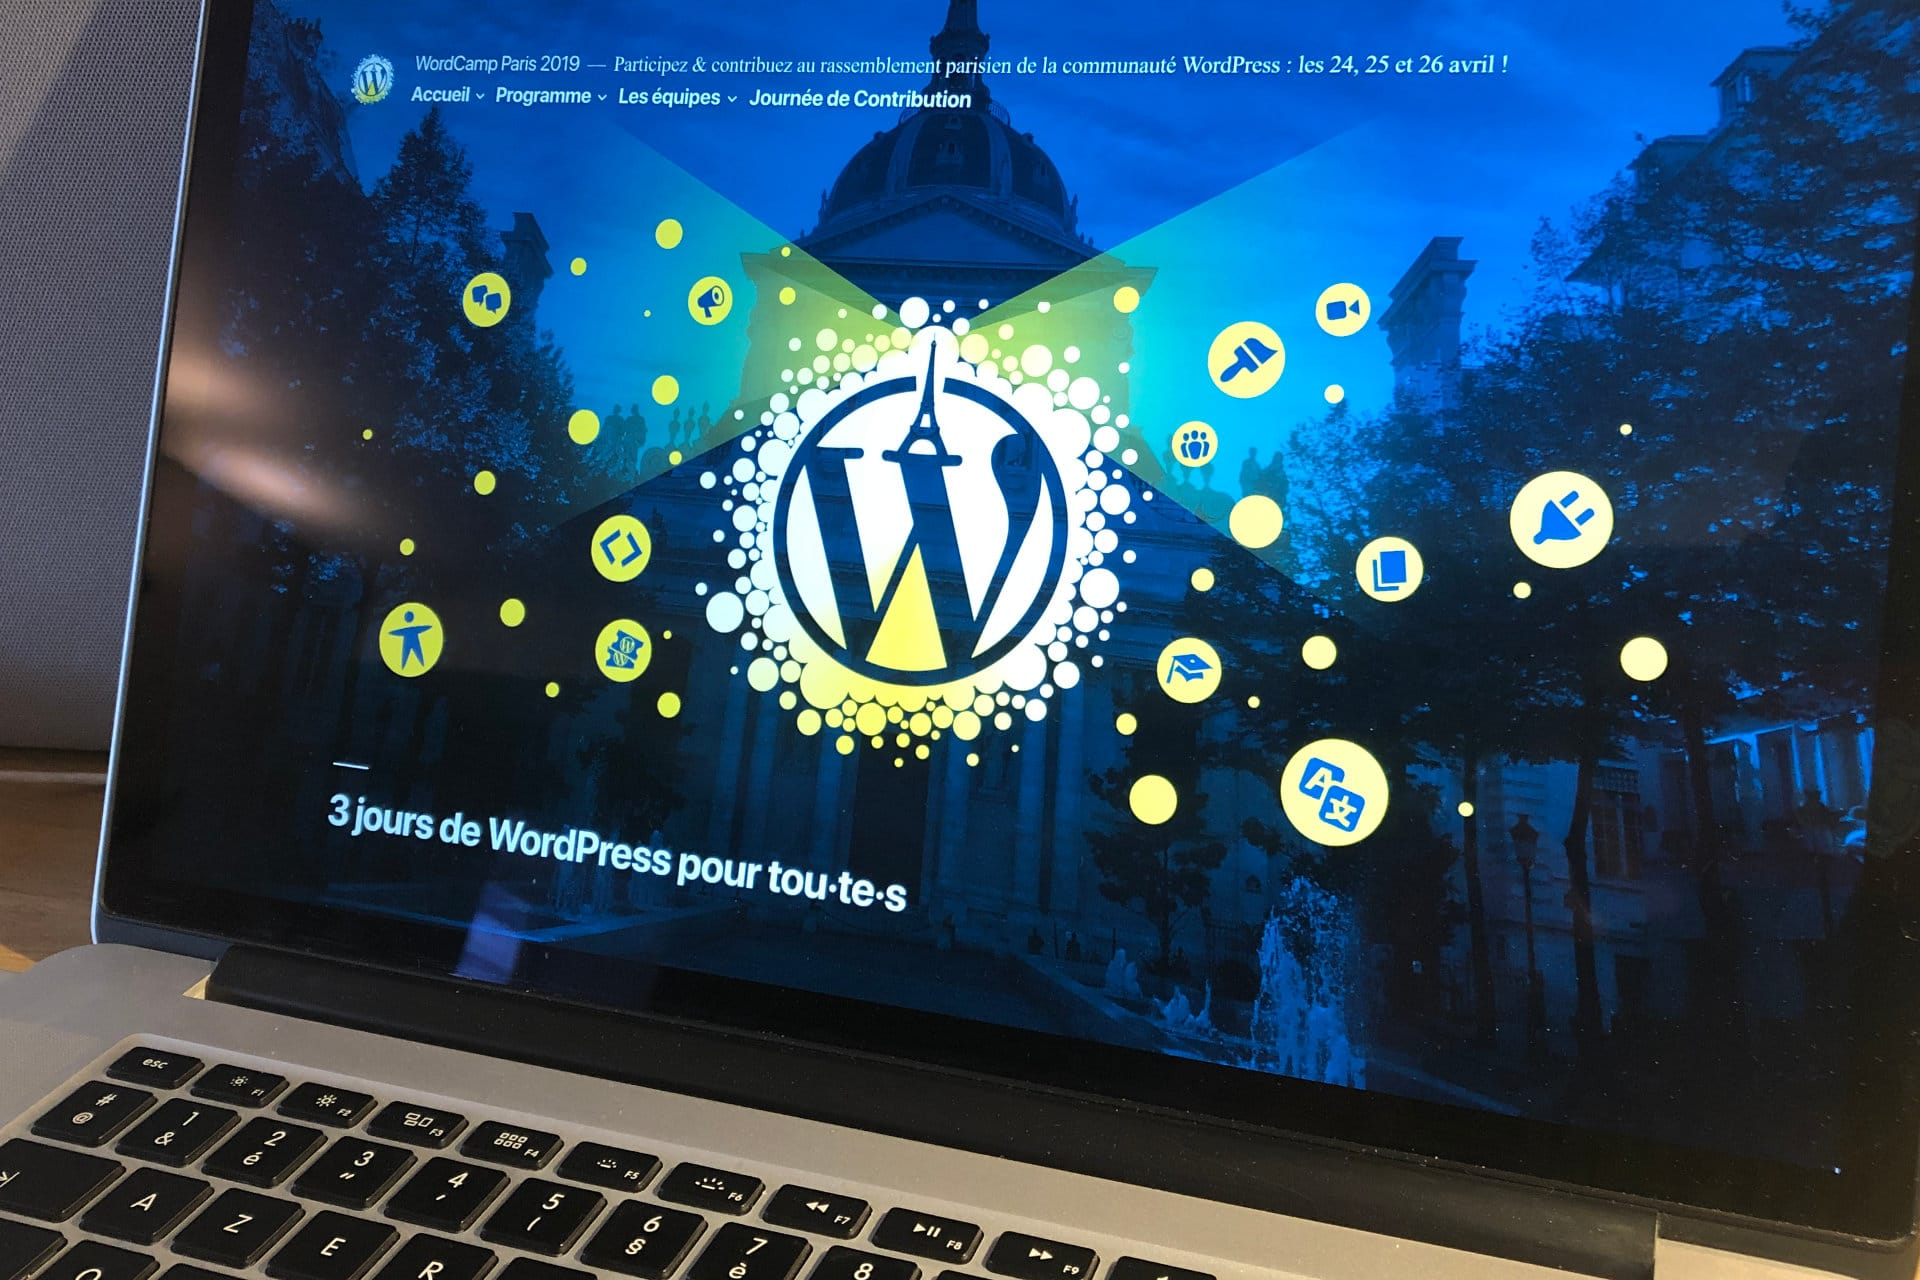 site wordcamp paris 2019